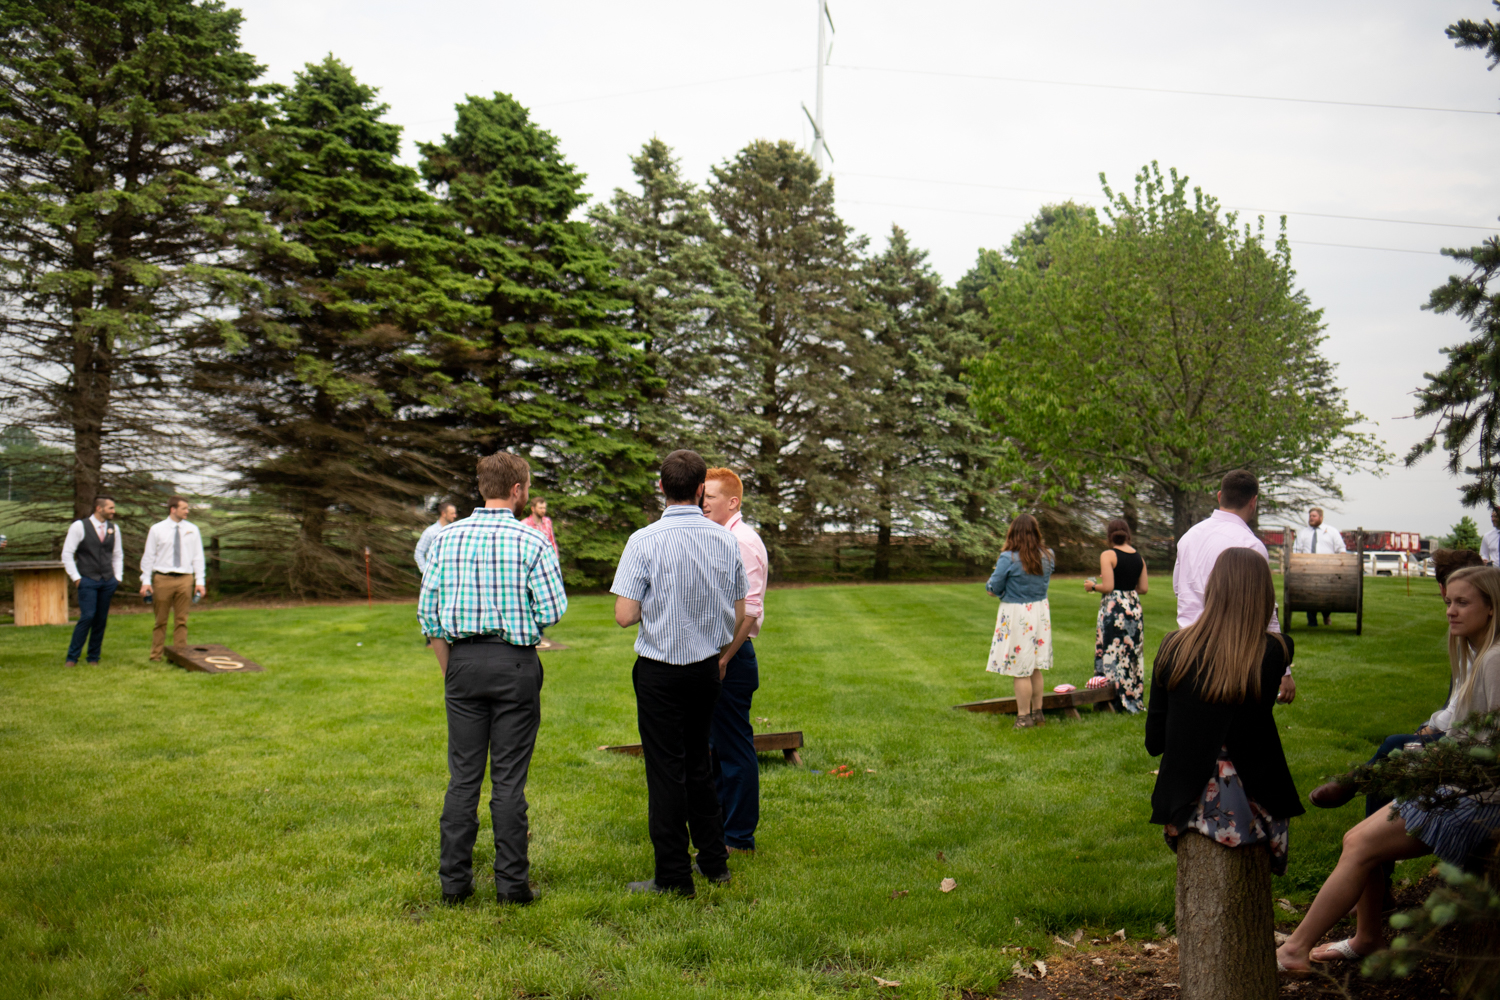 Backyard Wedding in Wisconsin_Whit Meza Photography_66.jpg